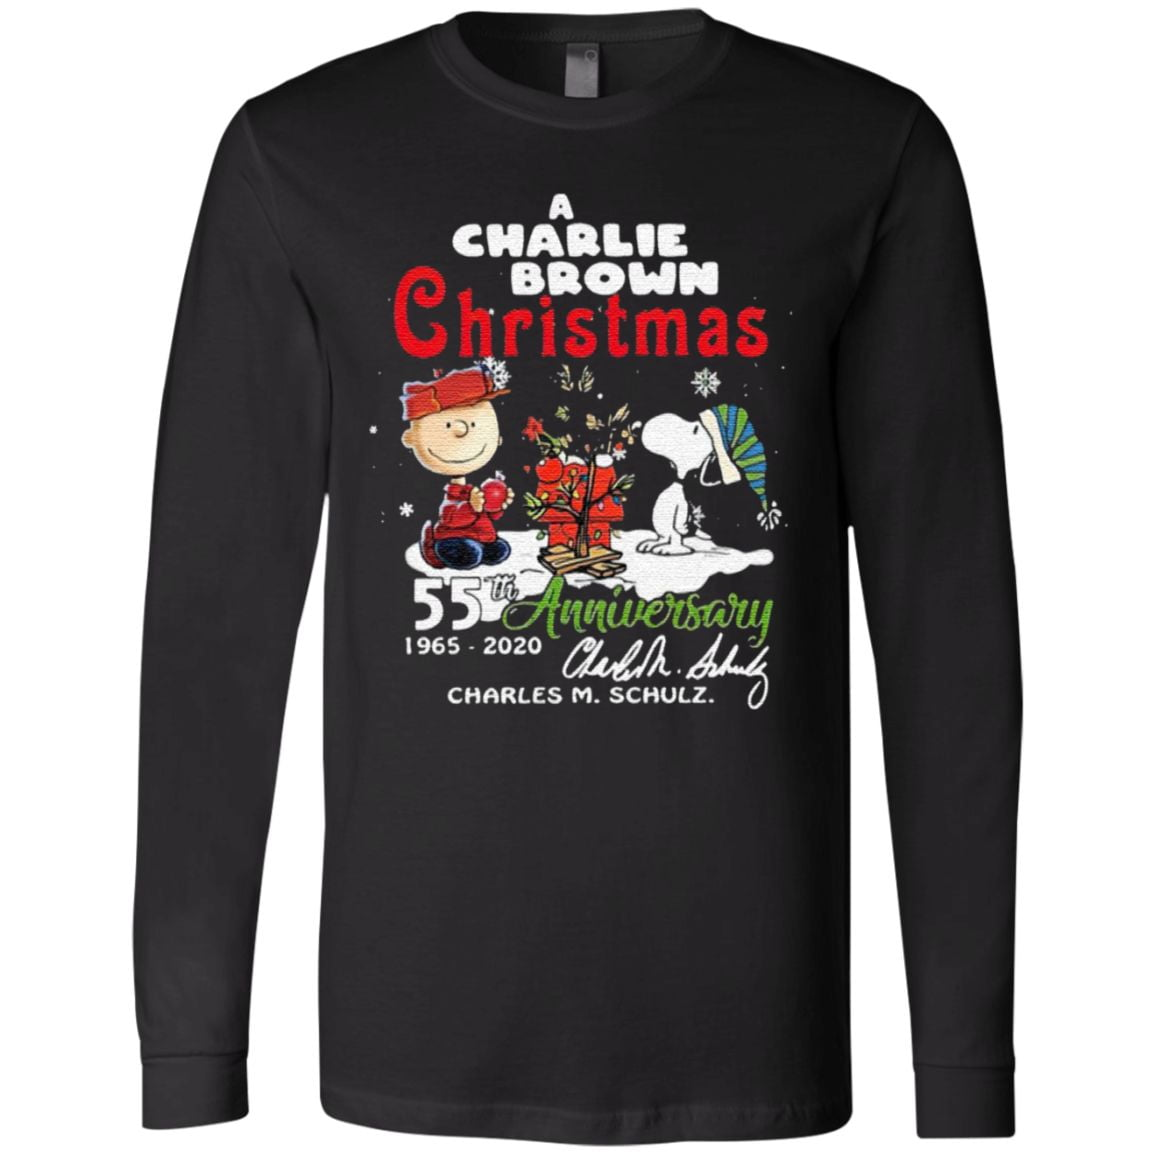 A Charlie Brown Christmas 55th Anniversary 1965-2020 Charles M Schulz Snoopy T Shirt